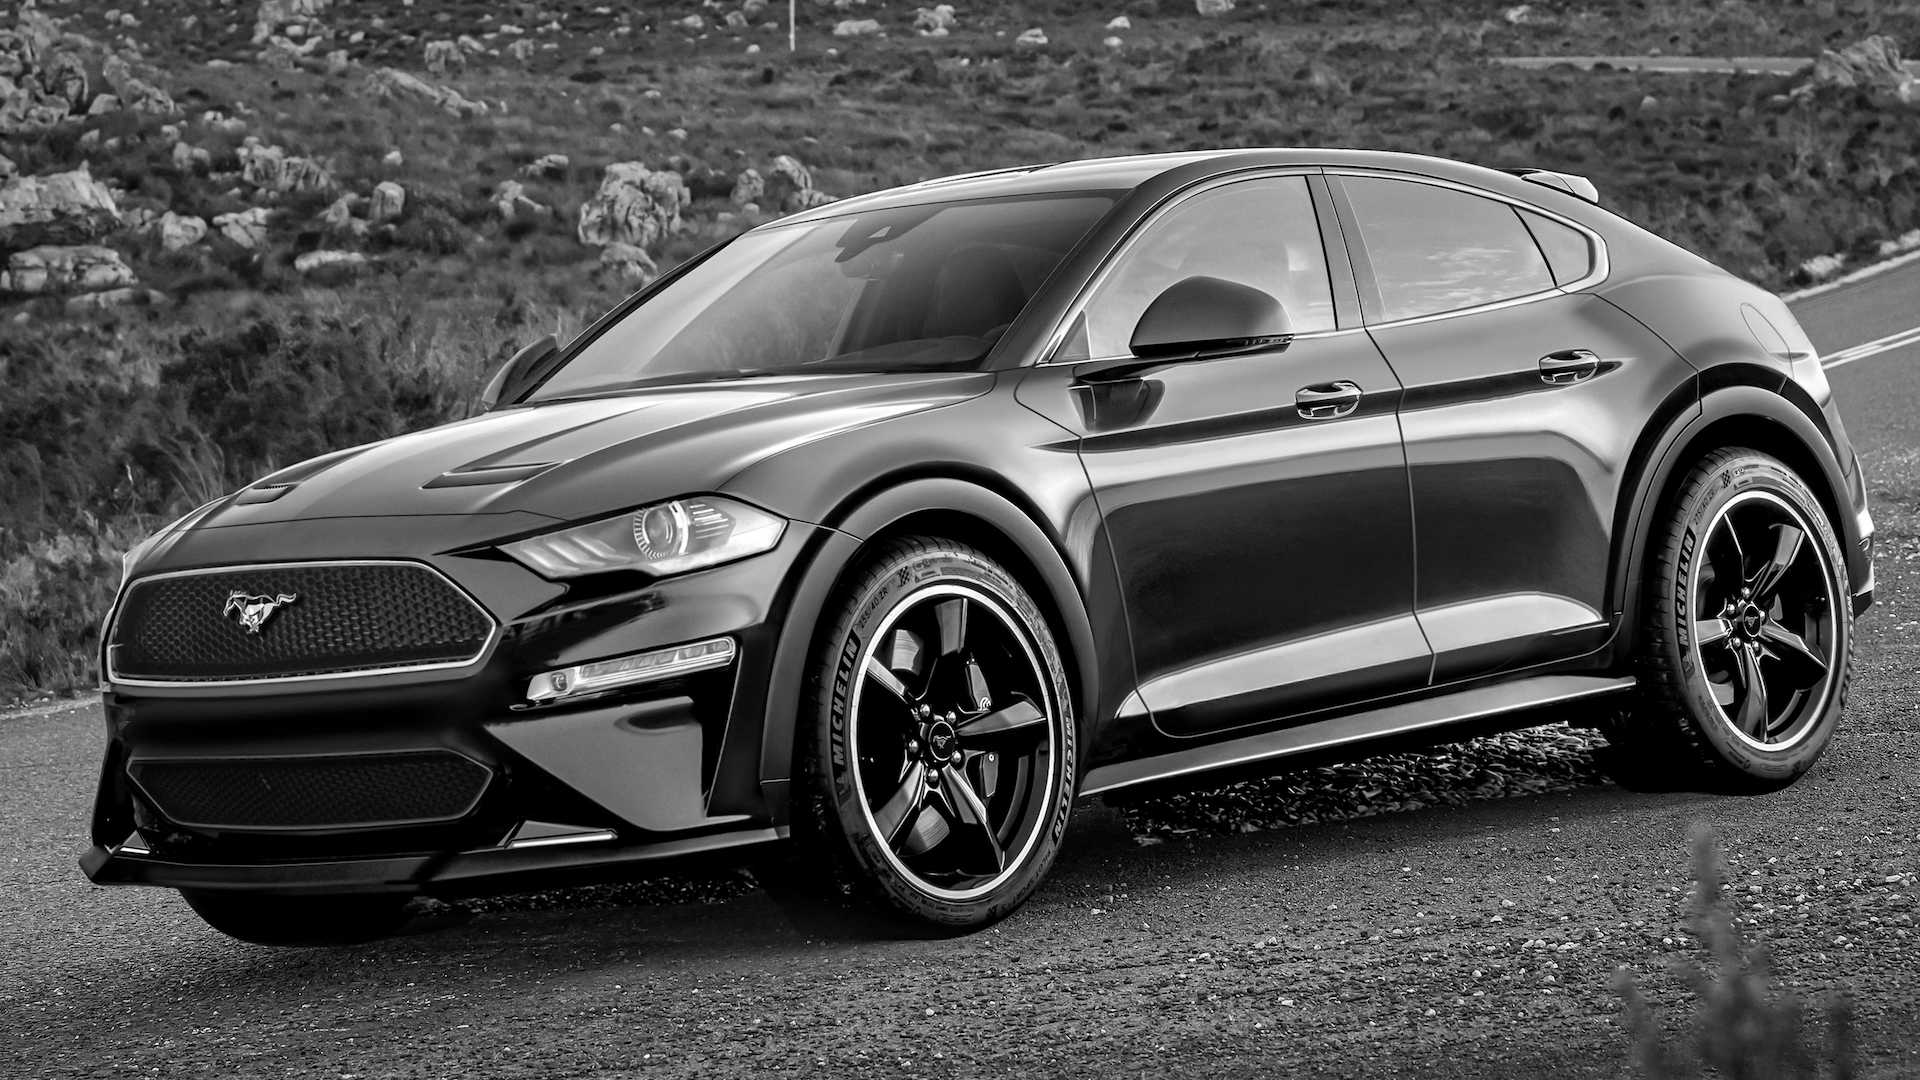 44 All New Ford Mustang Suv 2020 Pictures